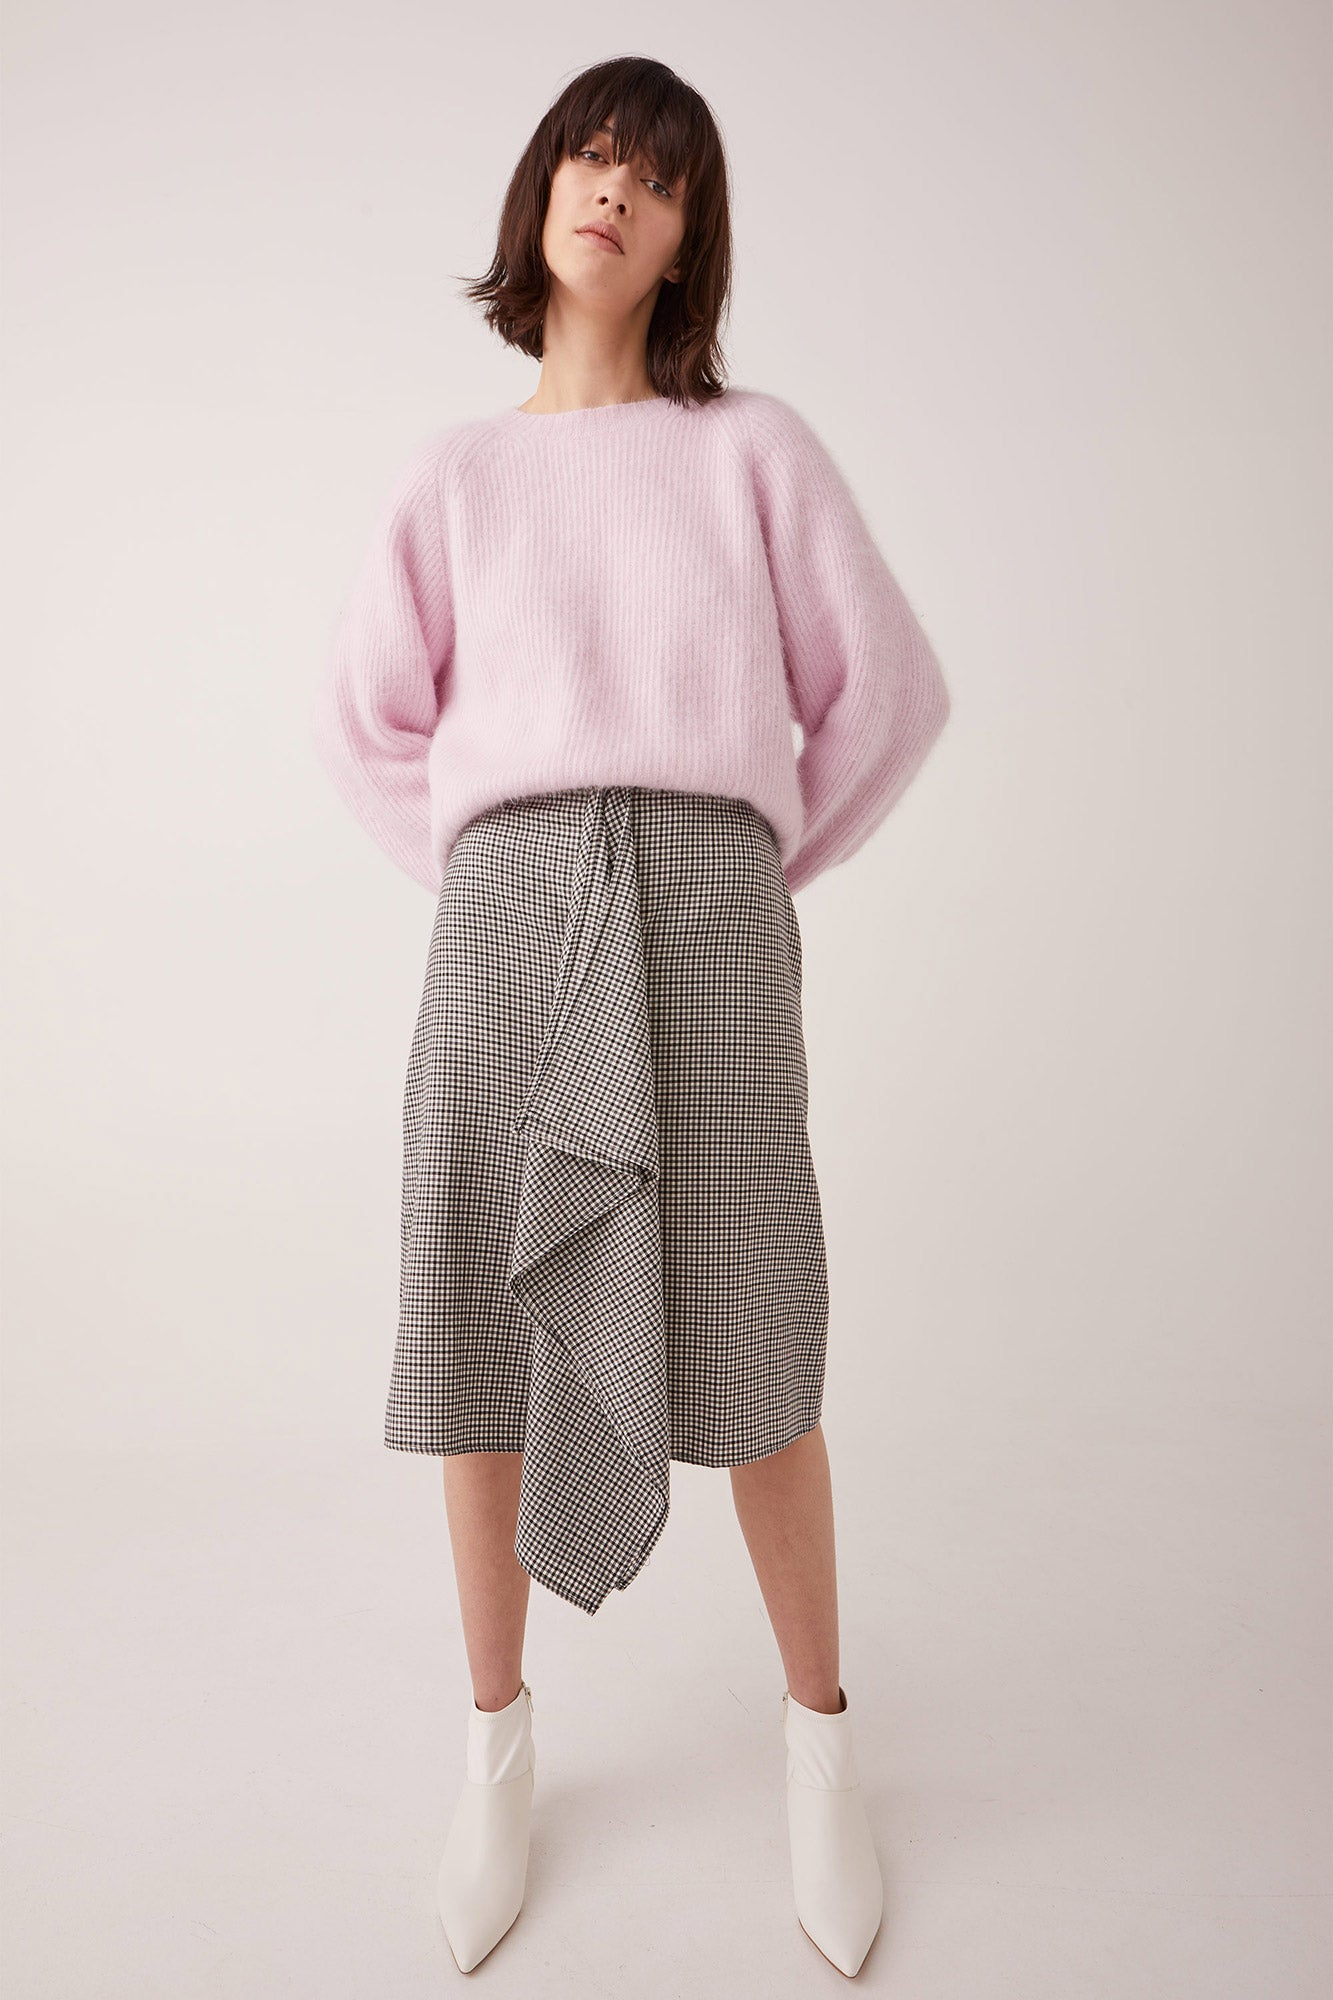 Ricochet NZ Fashion Designer Clothing Boutique AW19 Mollie Skirt Made in NZ